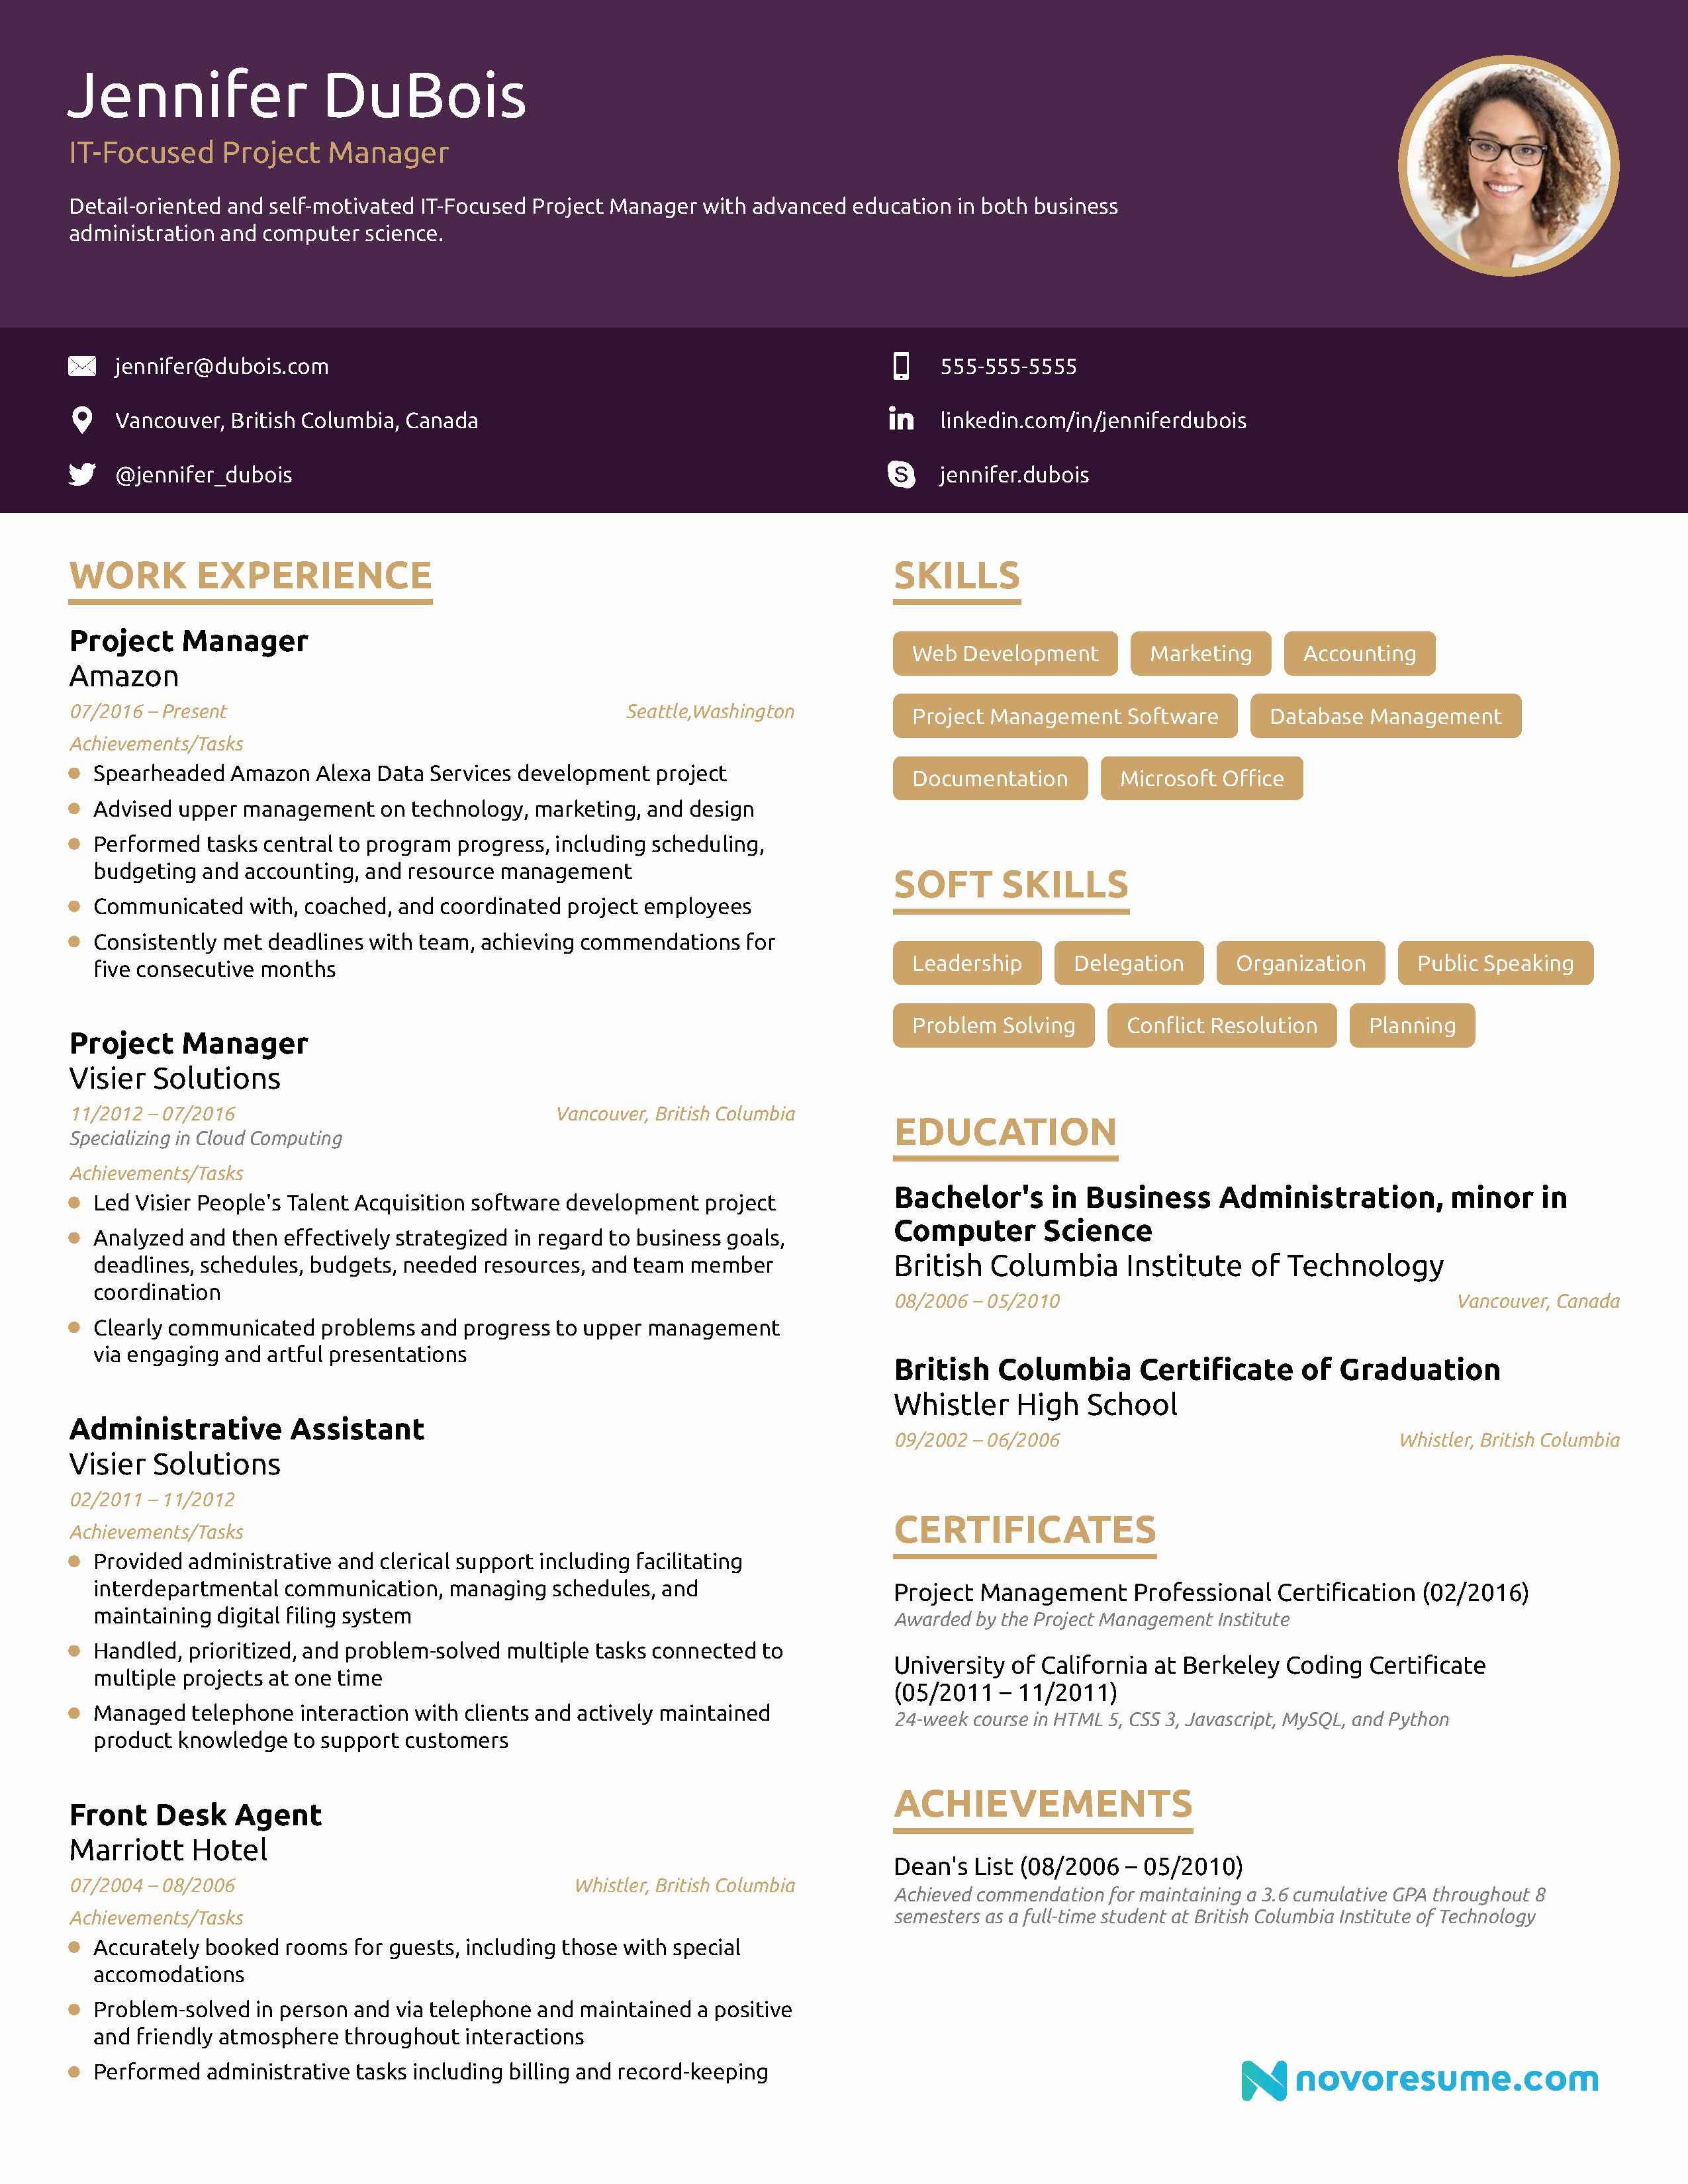 Project Manager Resume [2019] Example & Full Guide